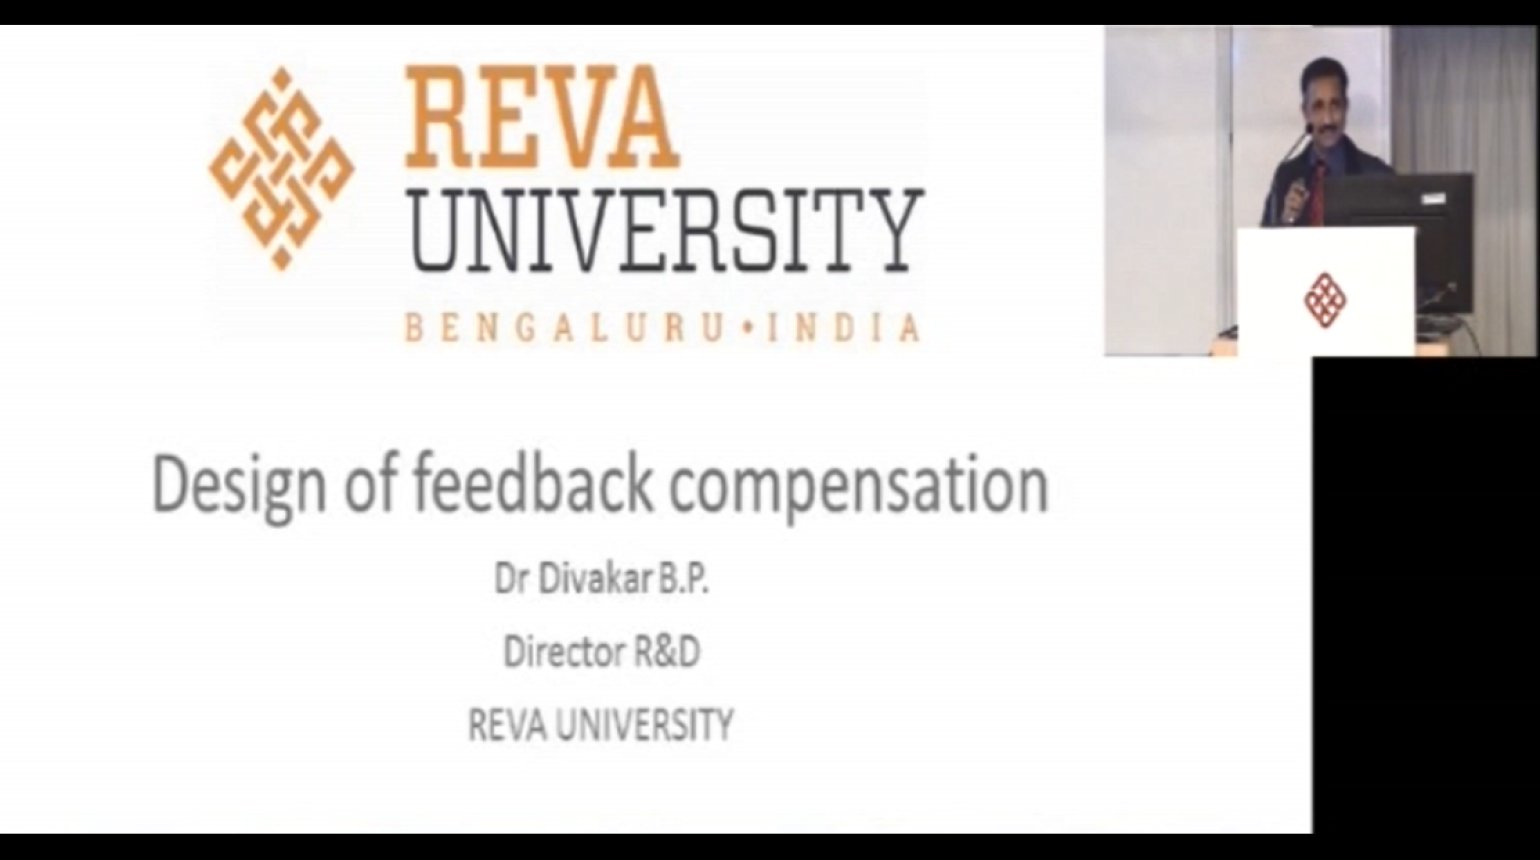 Design of feedback compensation